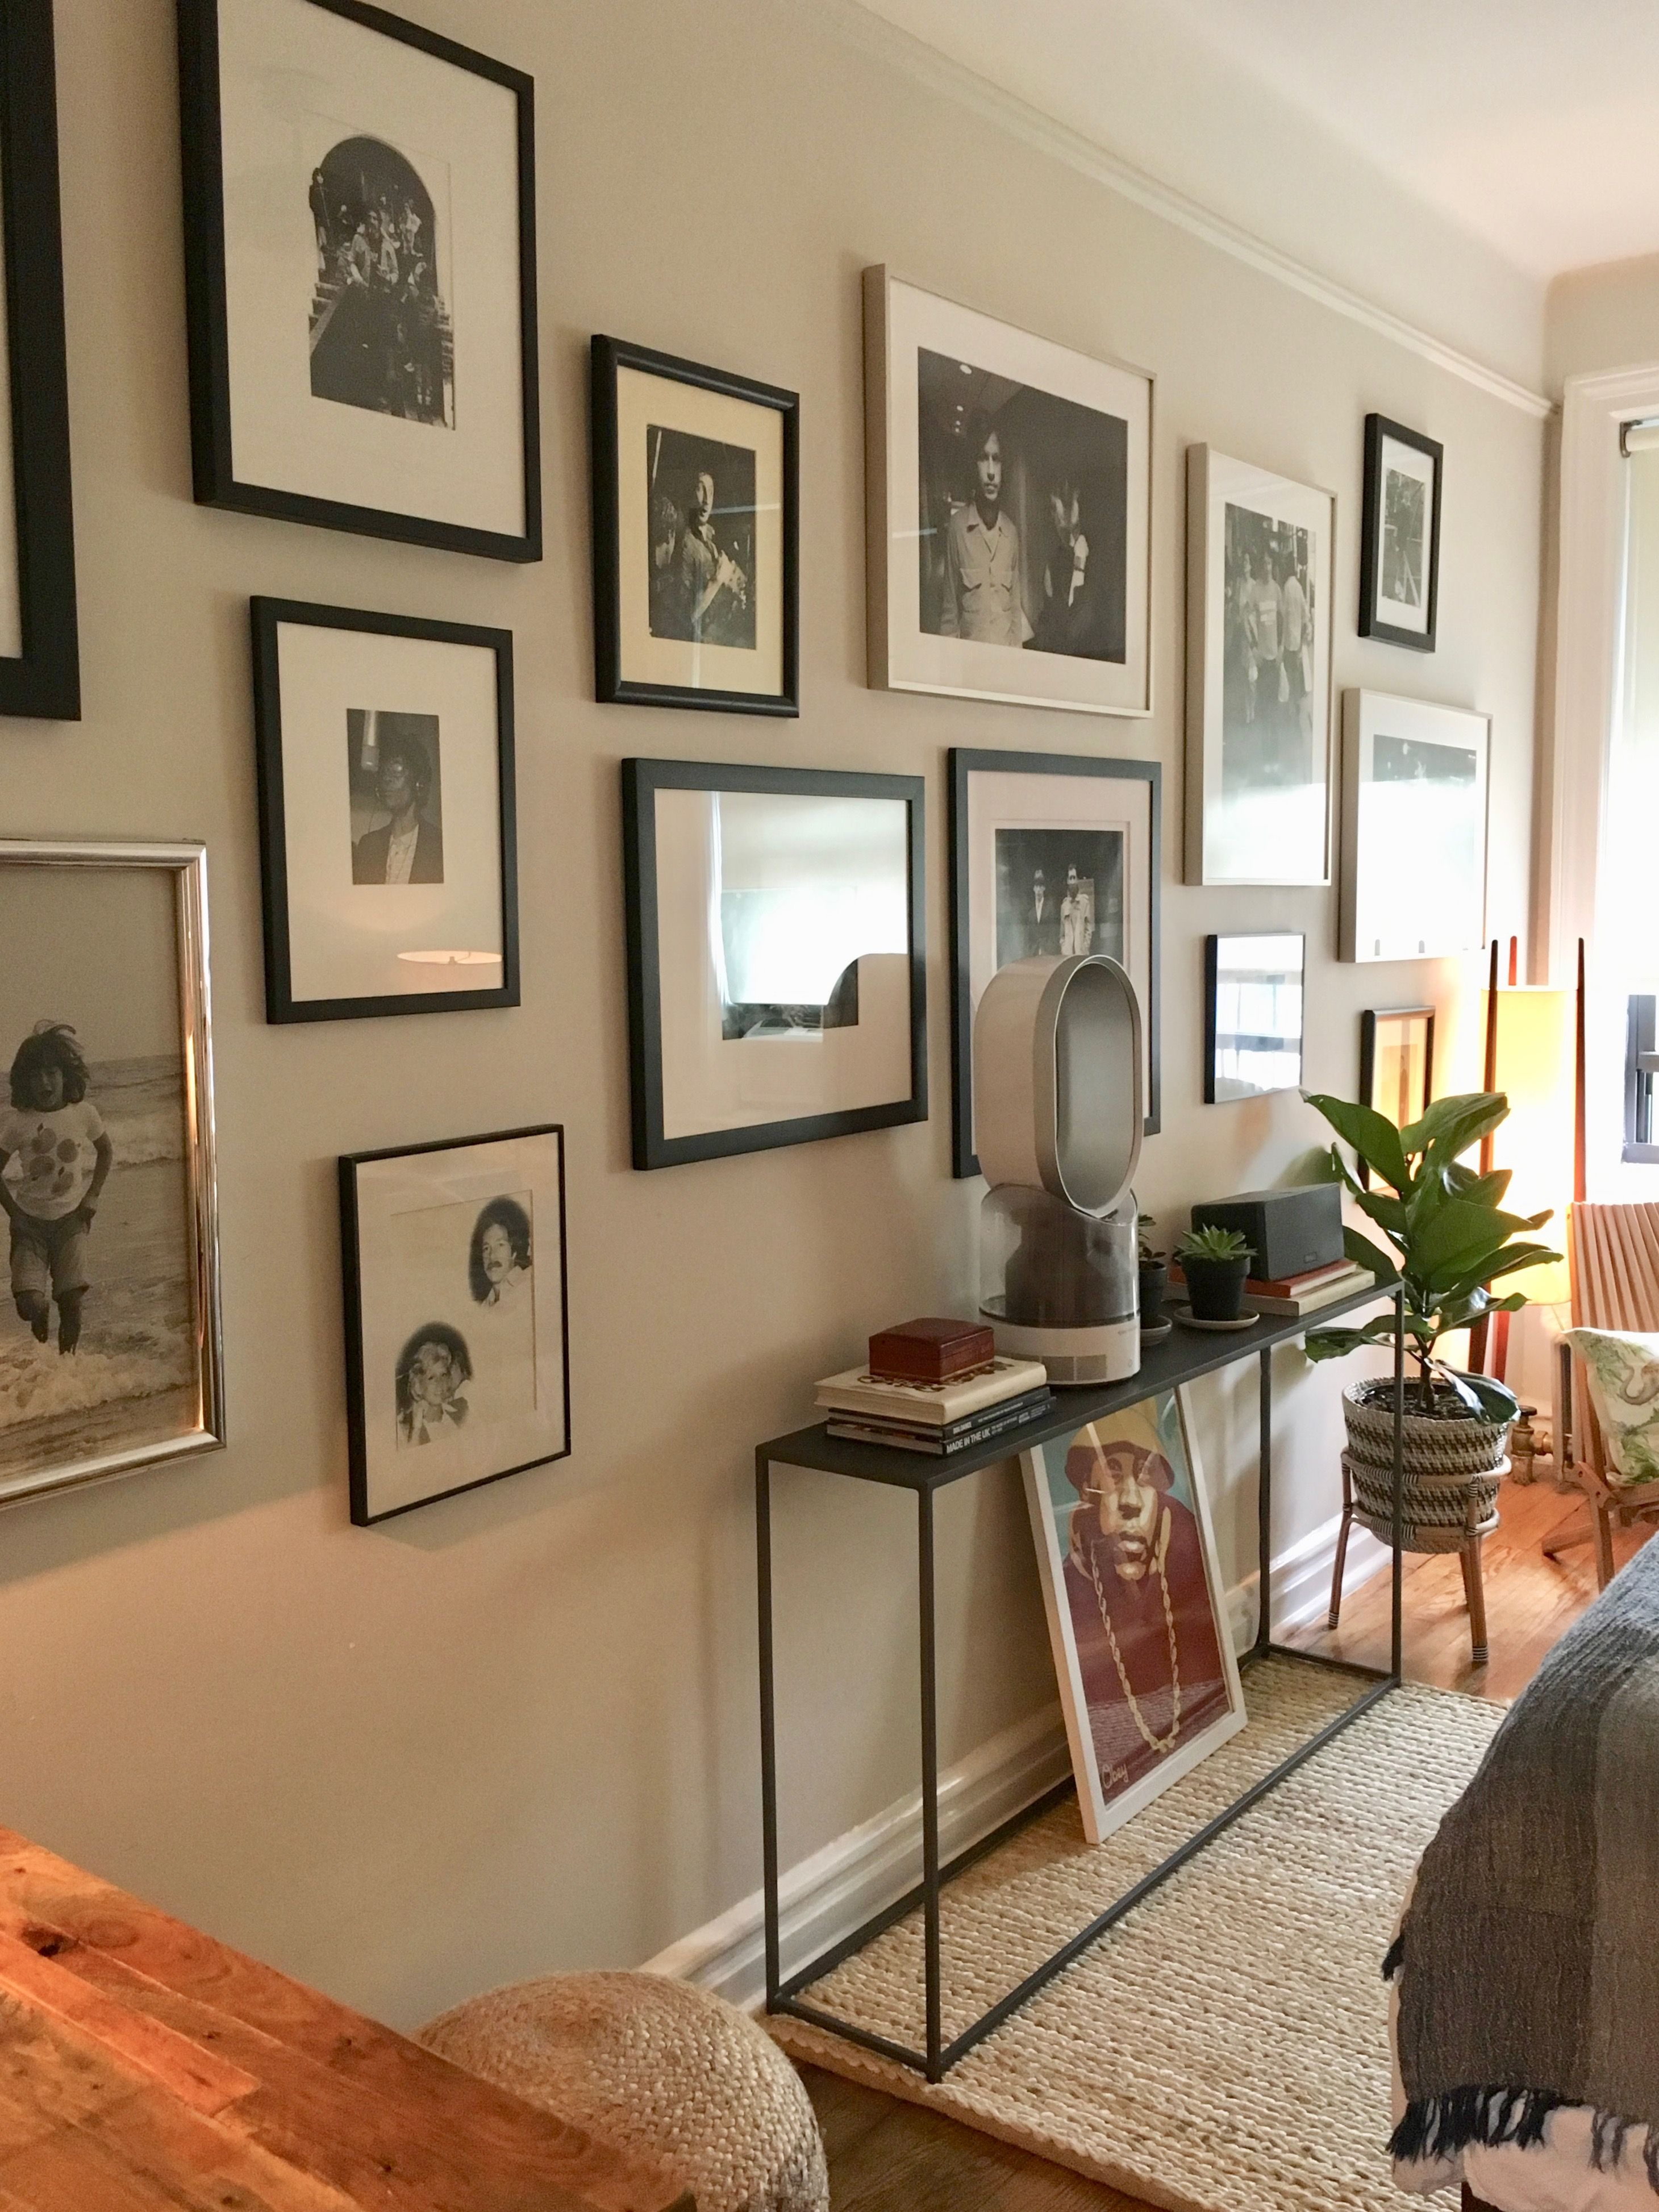 Black and white photography gallery wall in west village bedroom with cb2 console designed and styled by professional organizer laura cattano